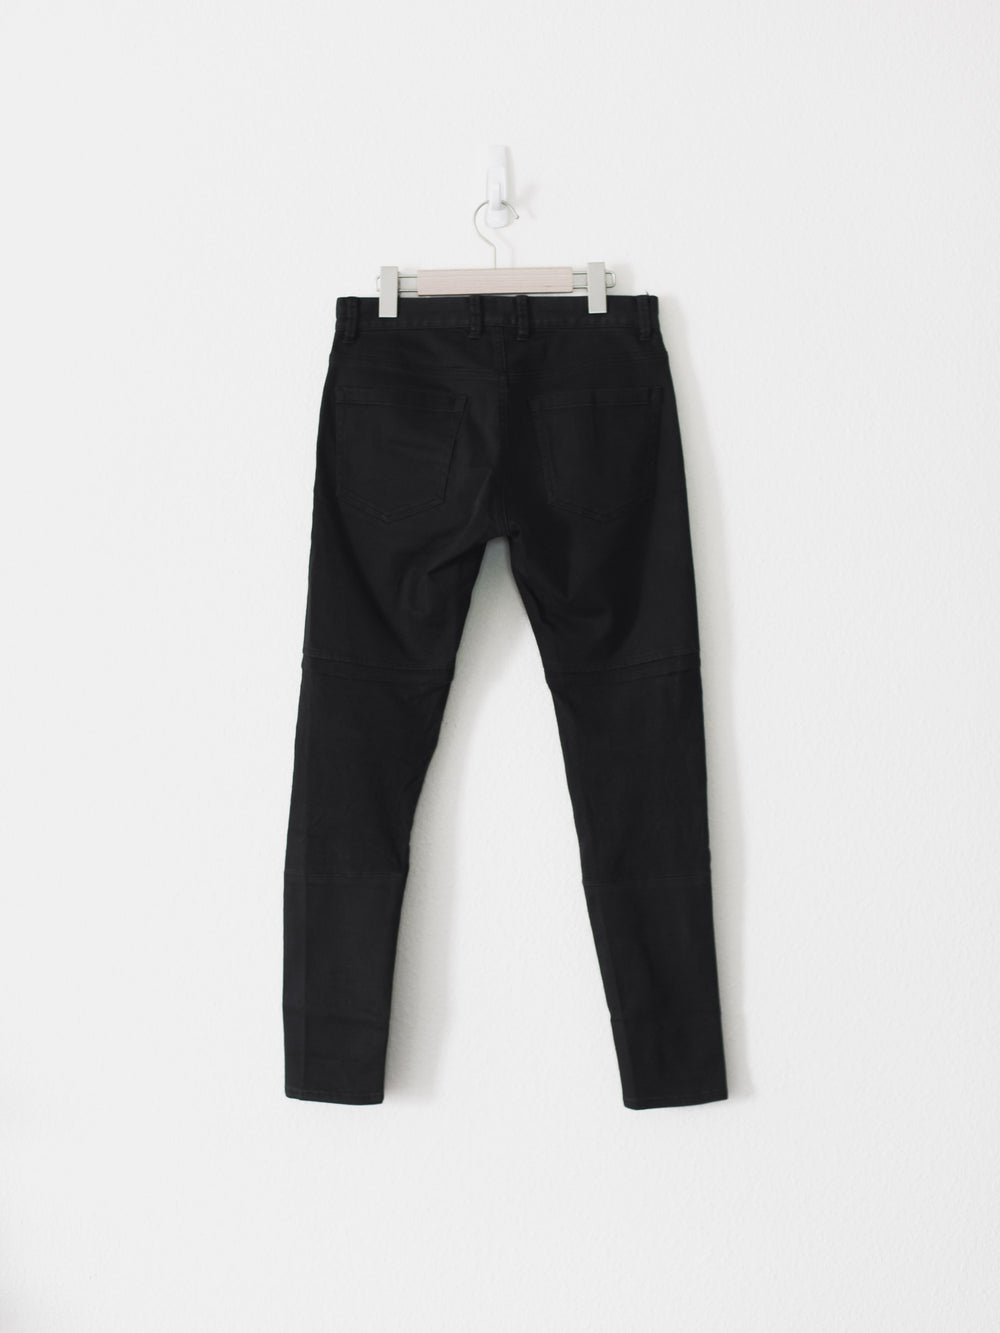 Undercover SS12 Split Knee Pants